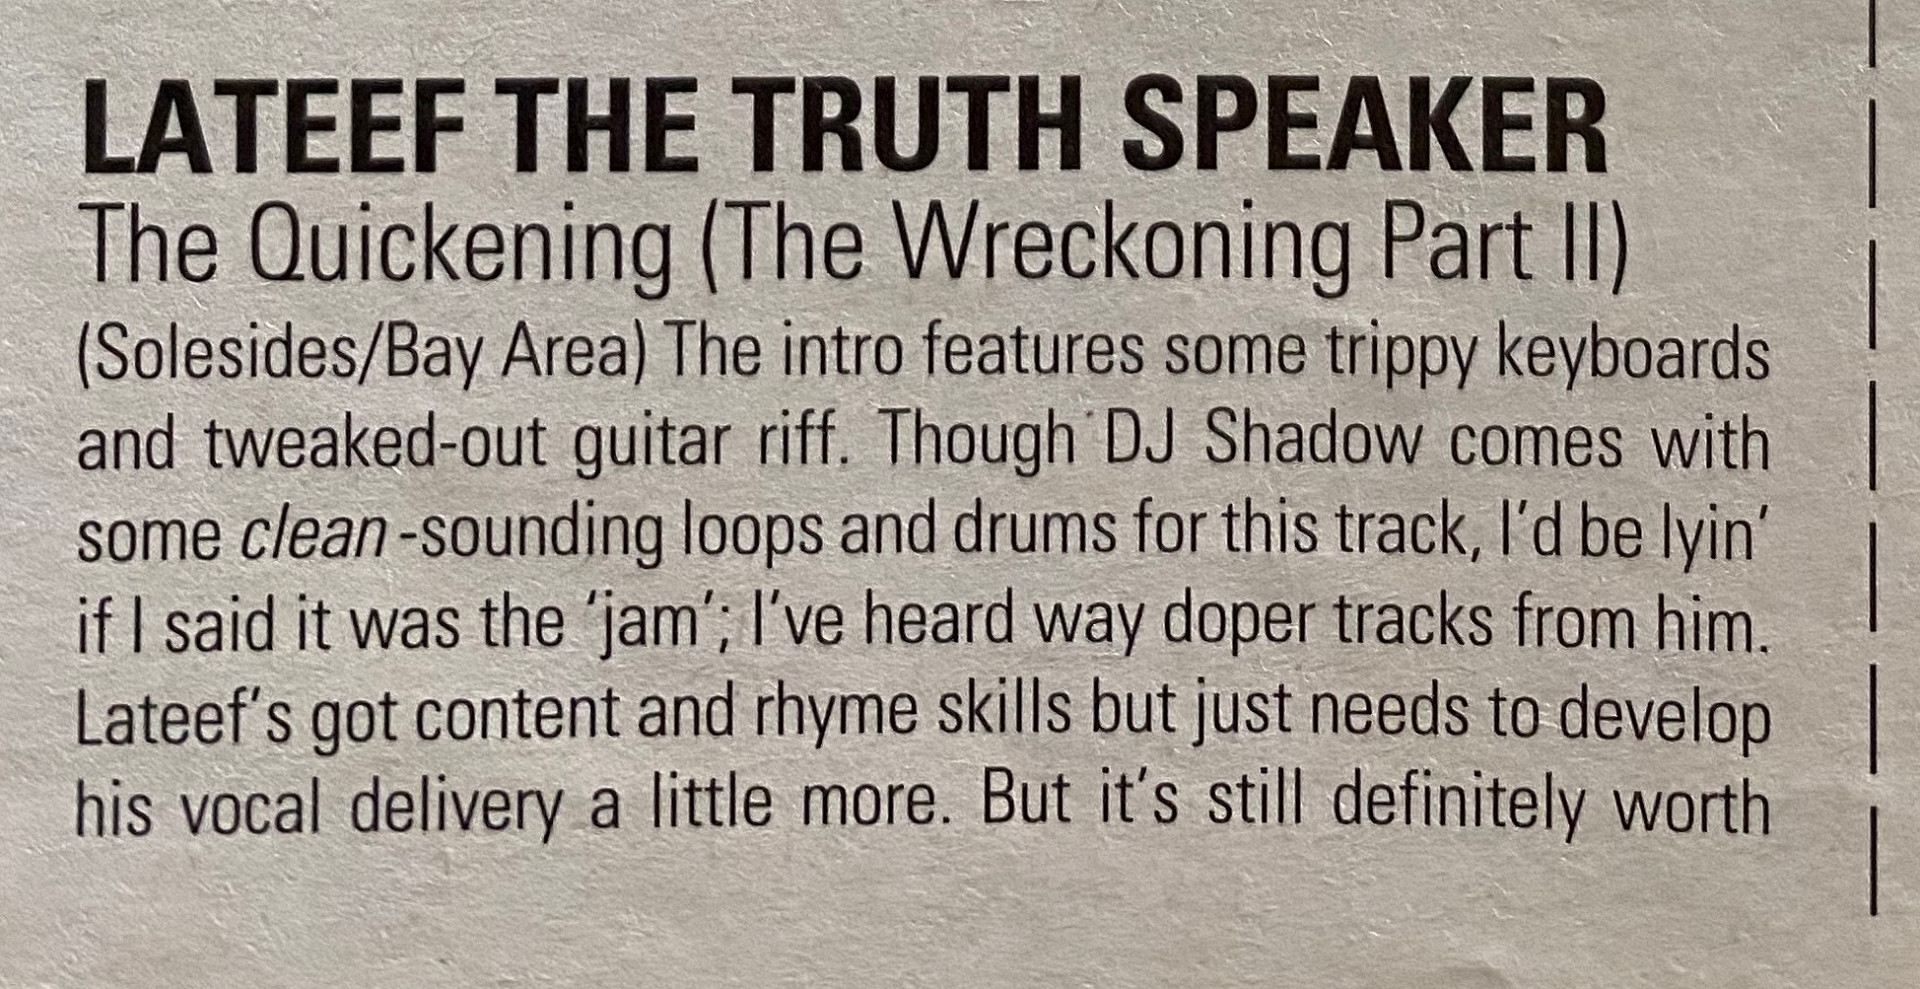 The Quickening (The Wreckoning Part II) Review part 1